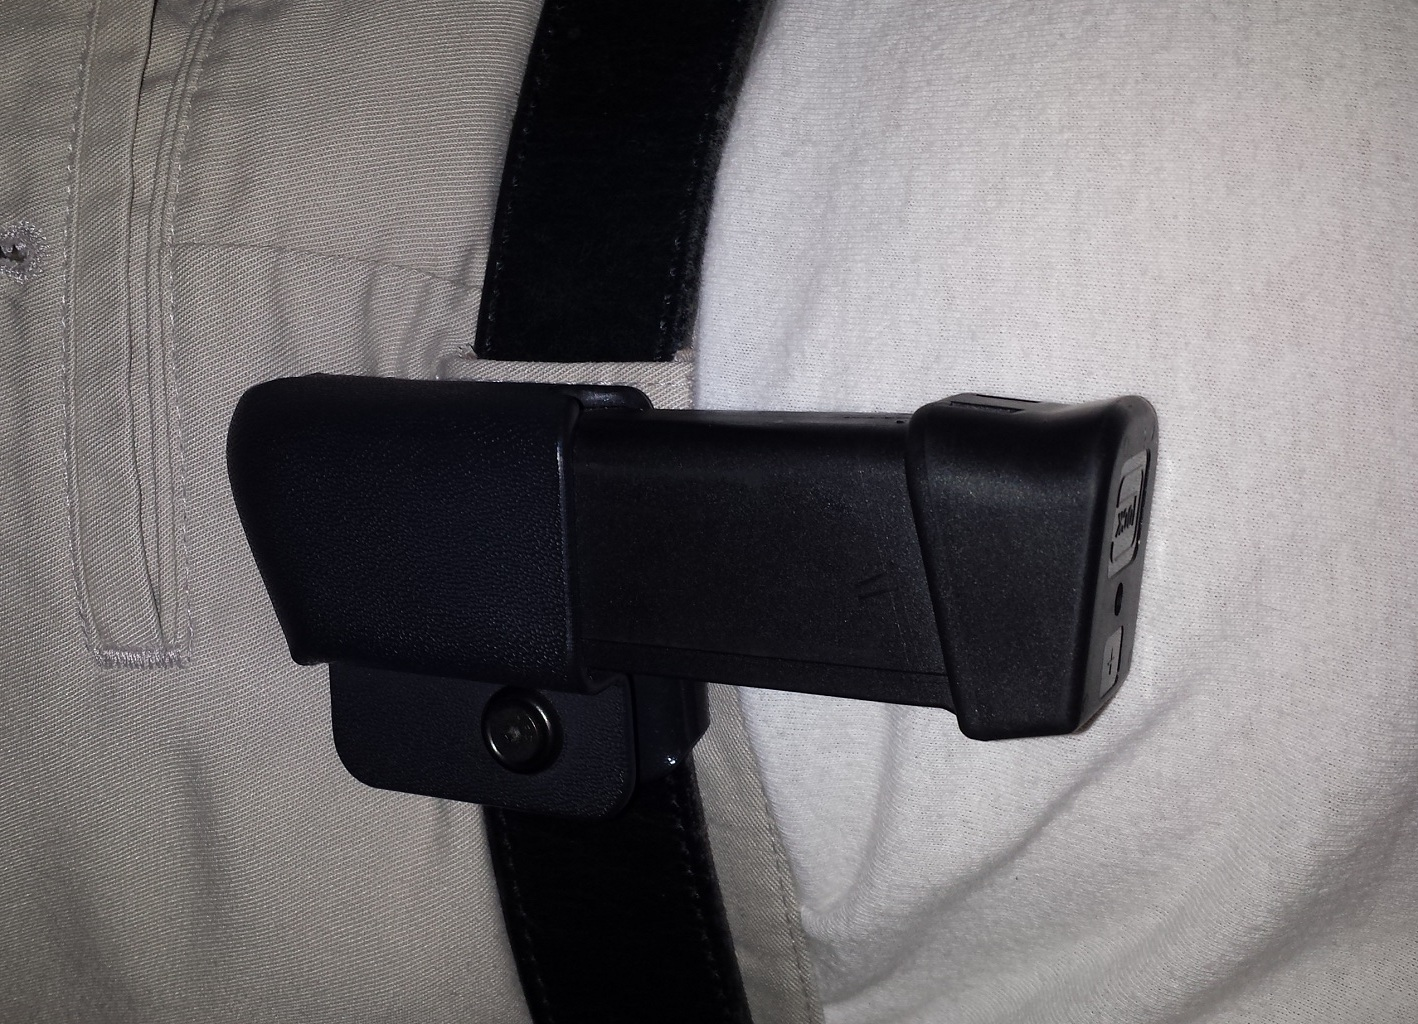 Com-Tac Mag pouch on belt